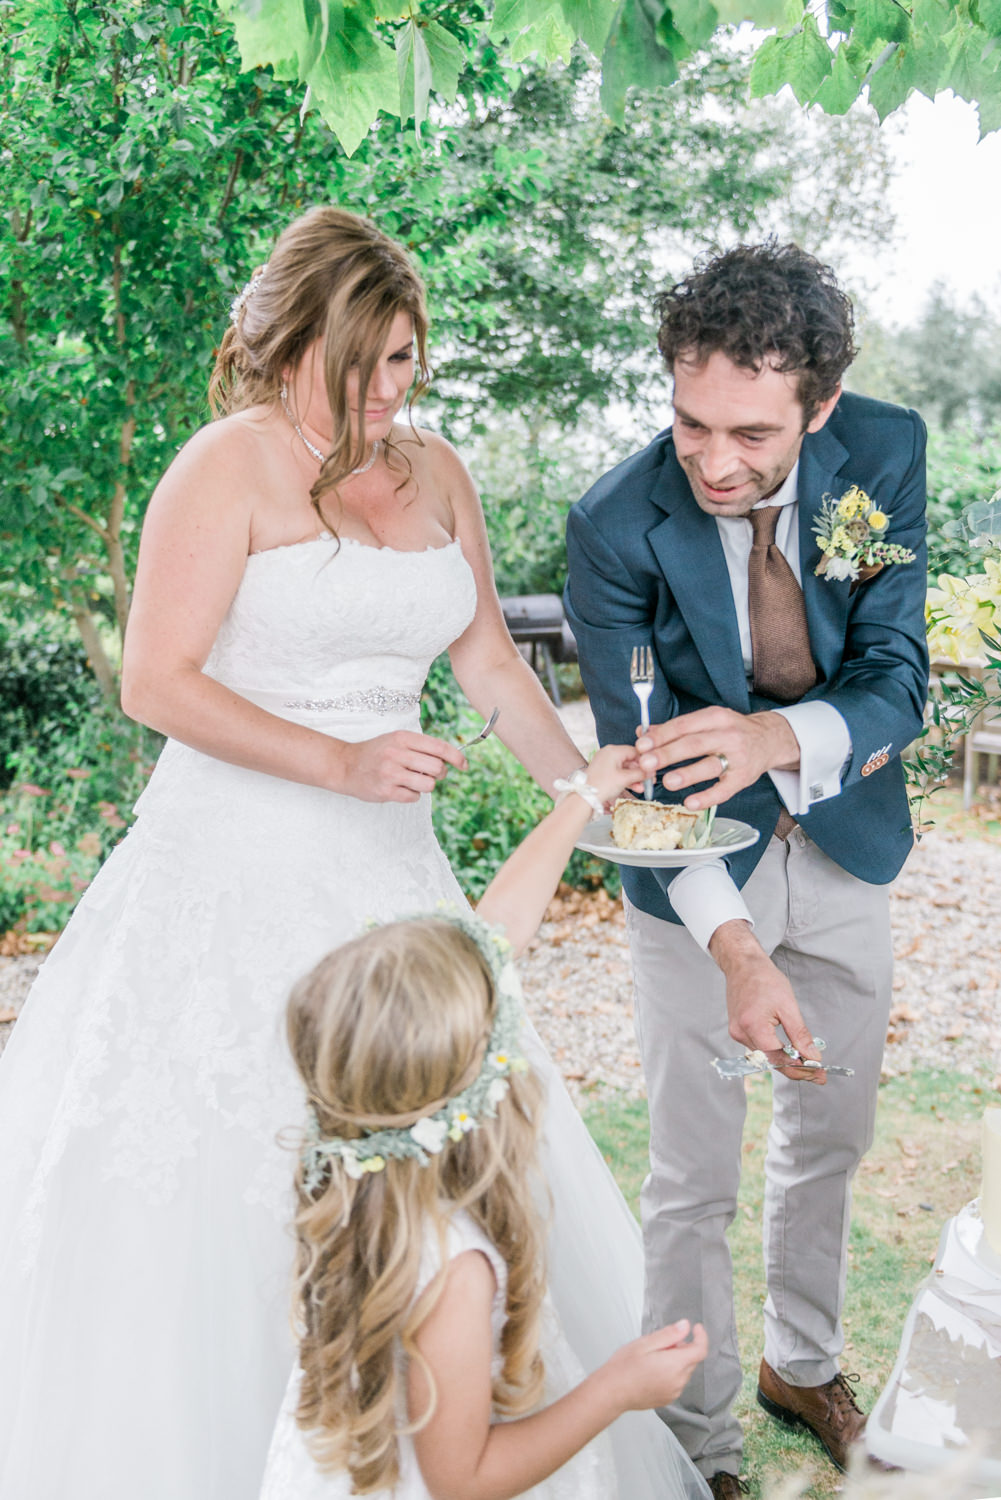 Cutting the cake at a destination wedding in Greece